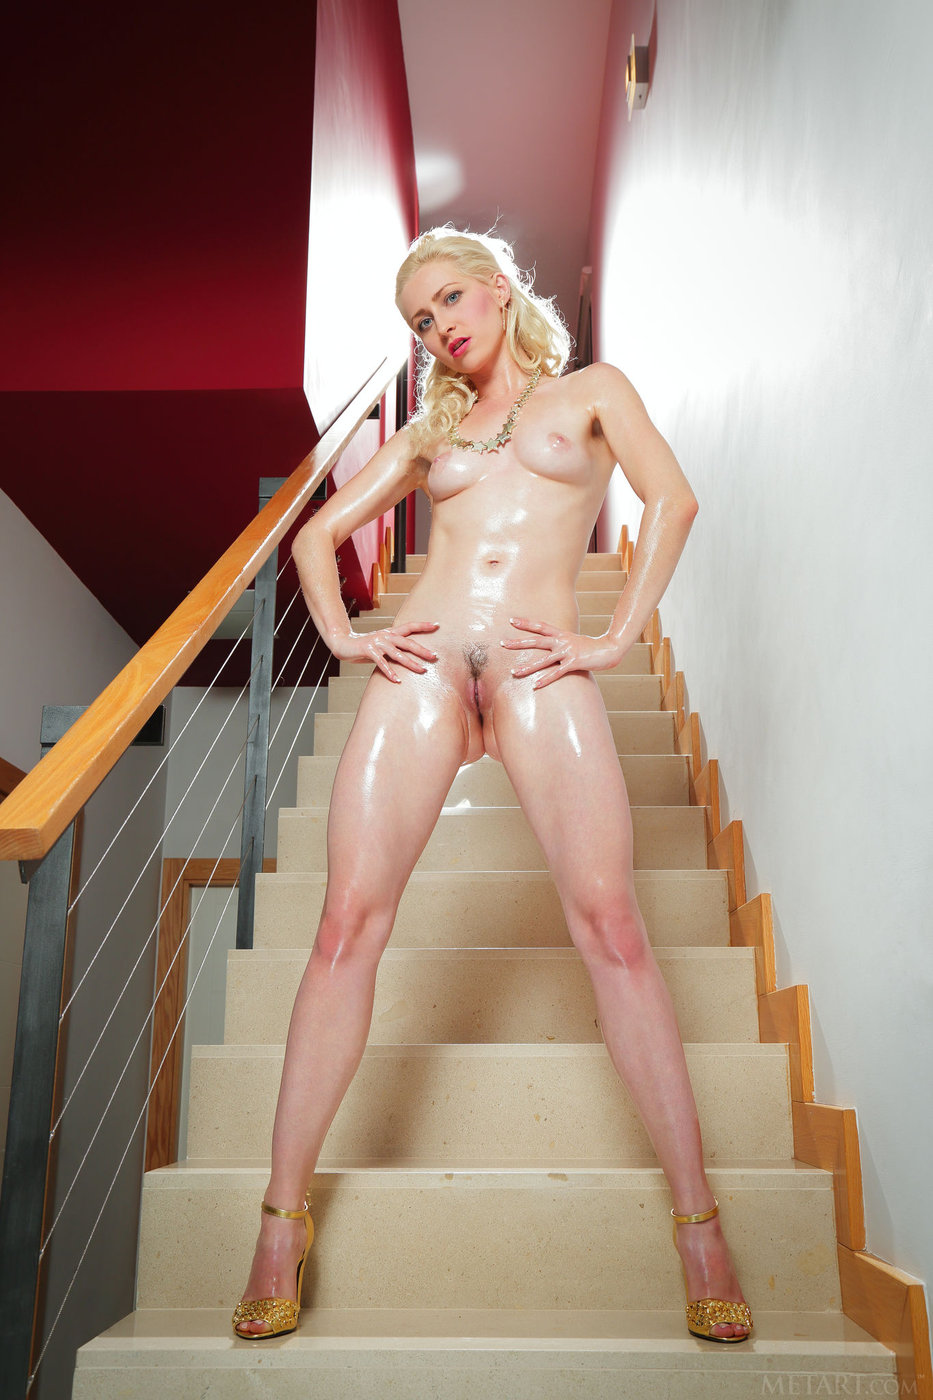 Oiled Up Naked Blonde Bravely Posing With Her Pussy On The Display Ametart Com